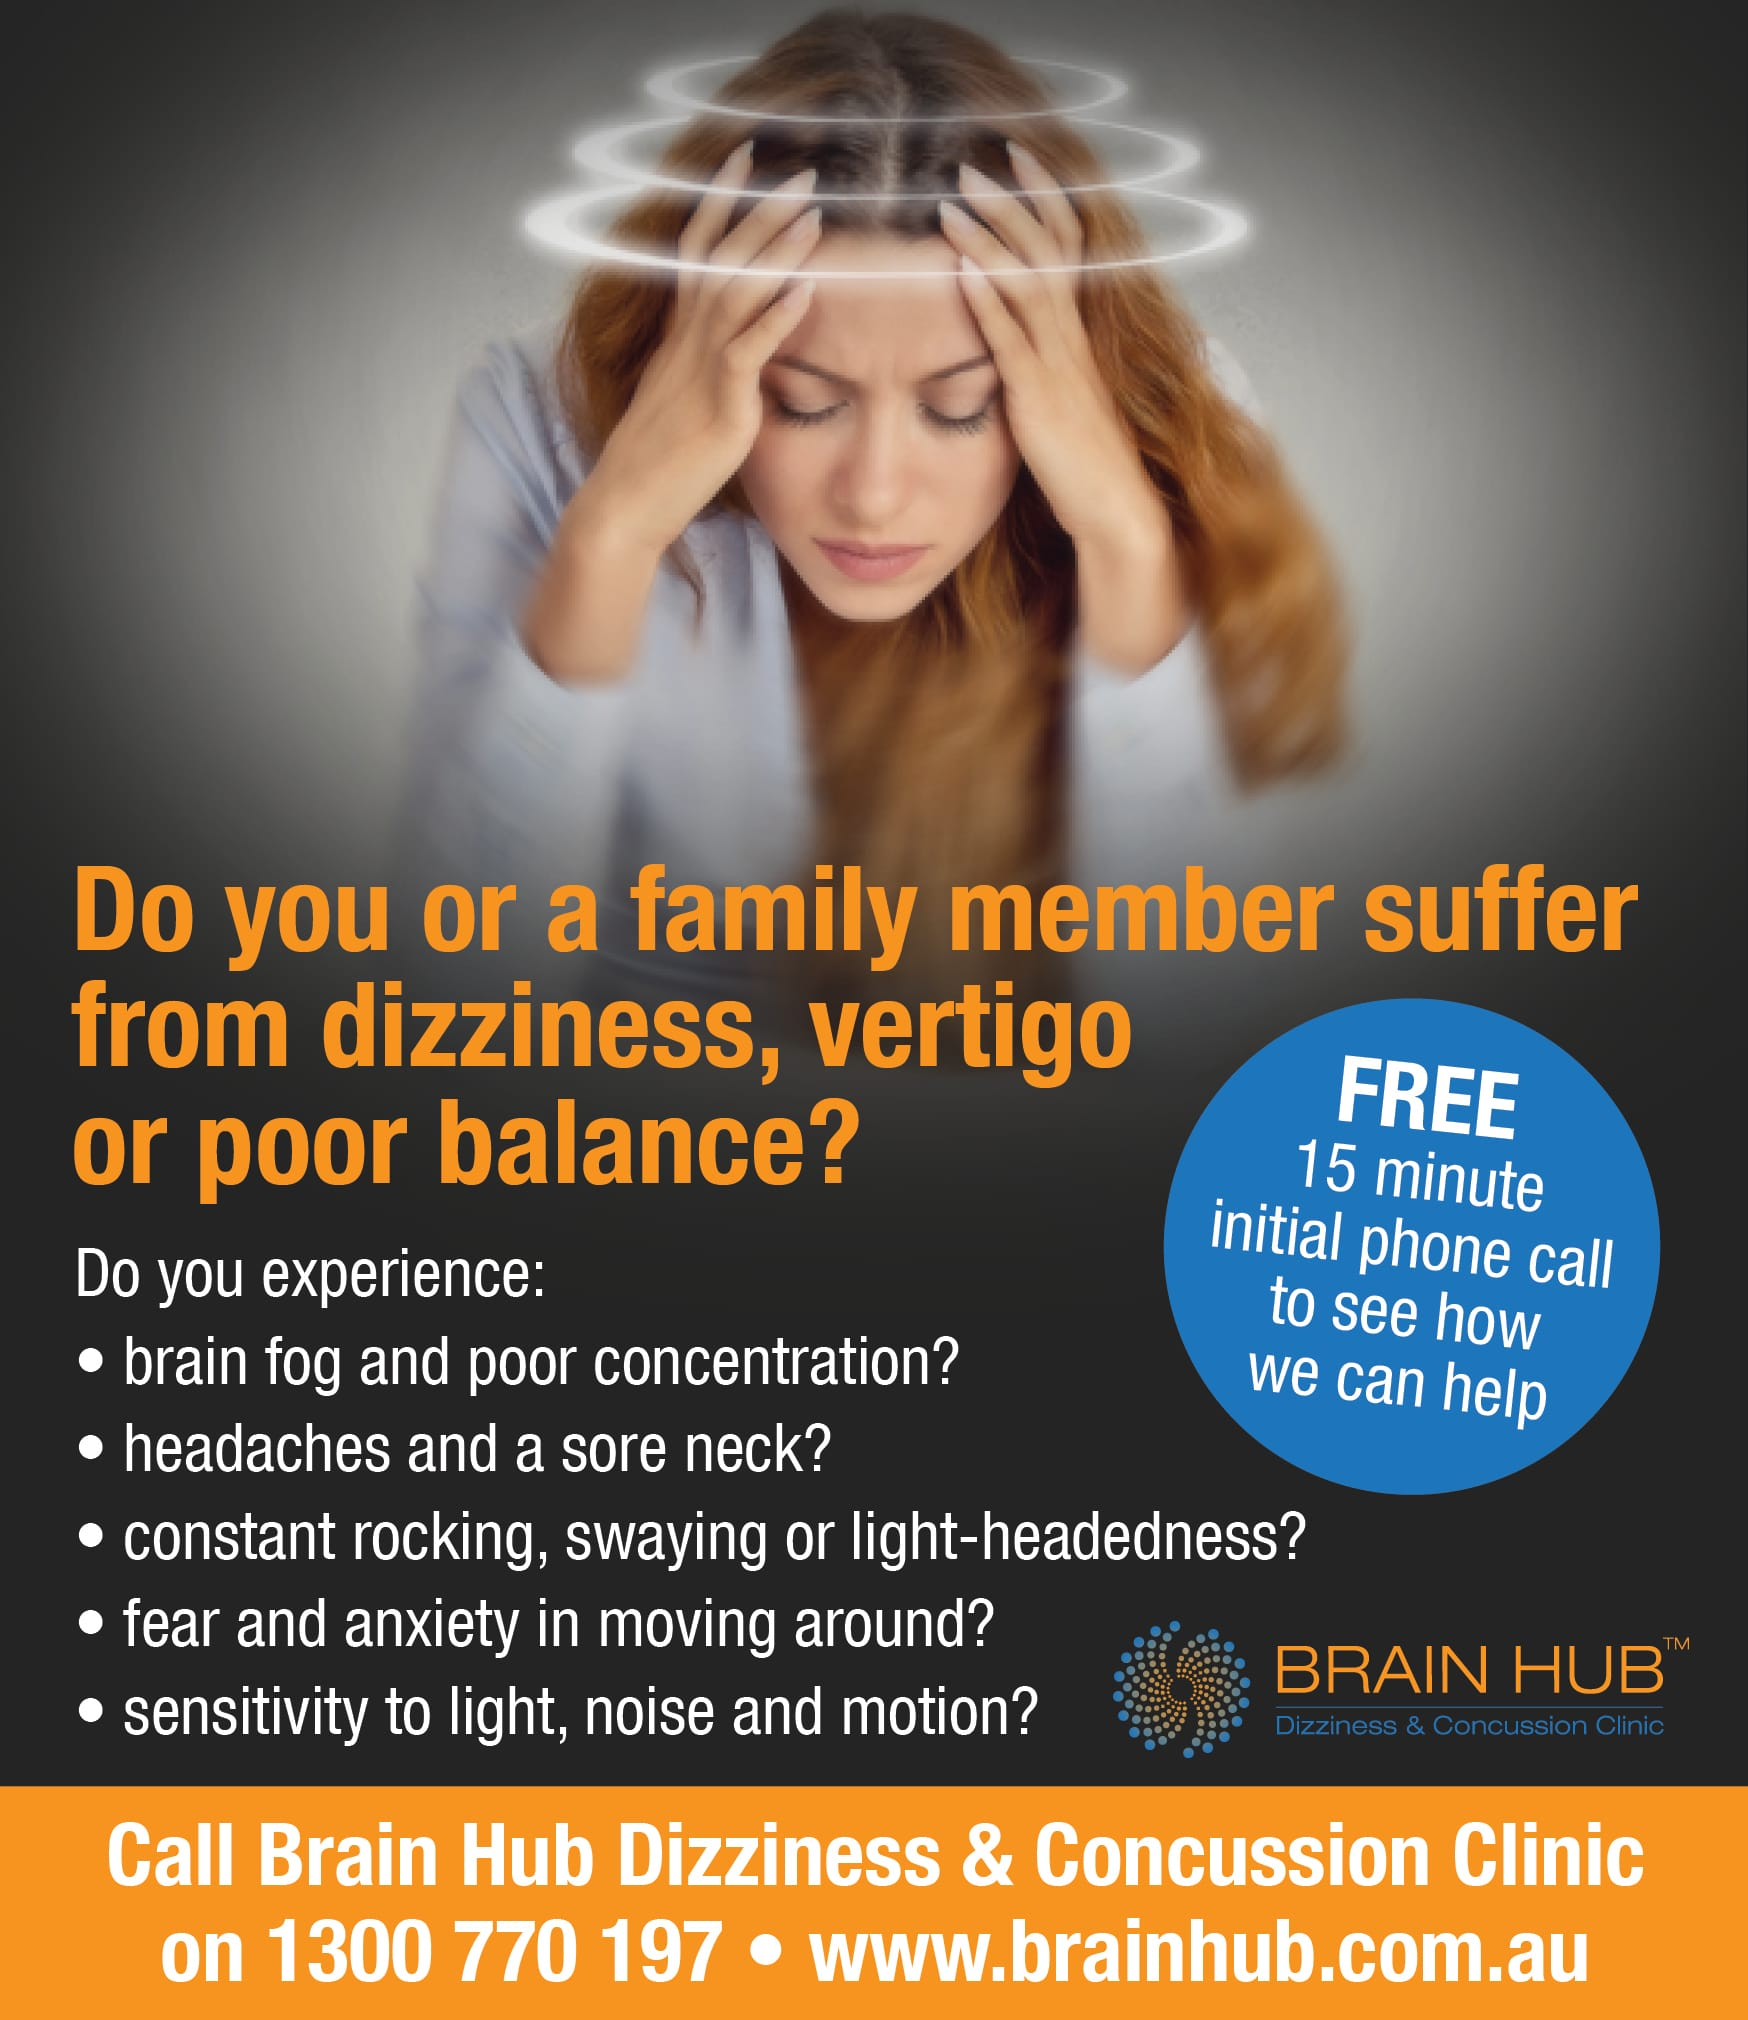 Take control of the effects of dizziness, vertigo and poor